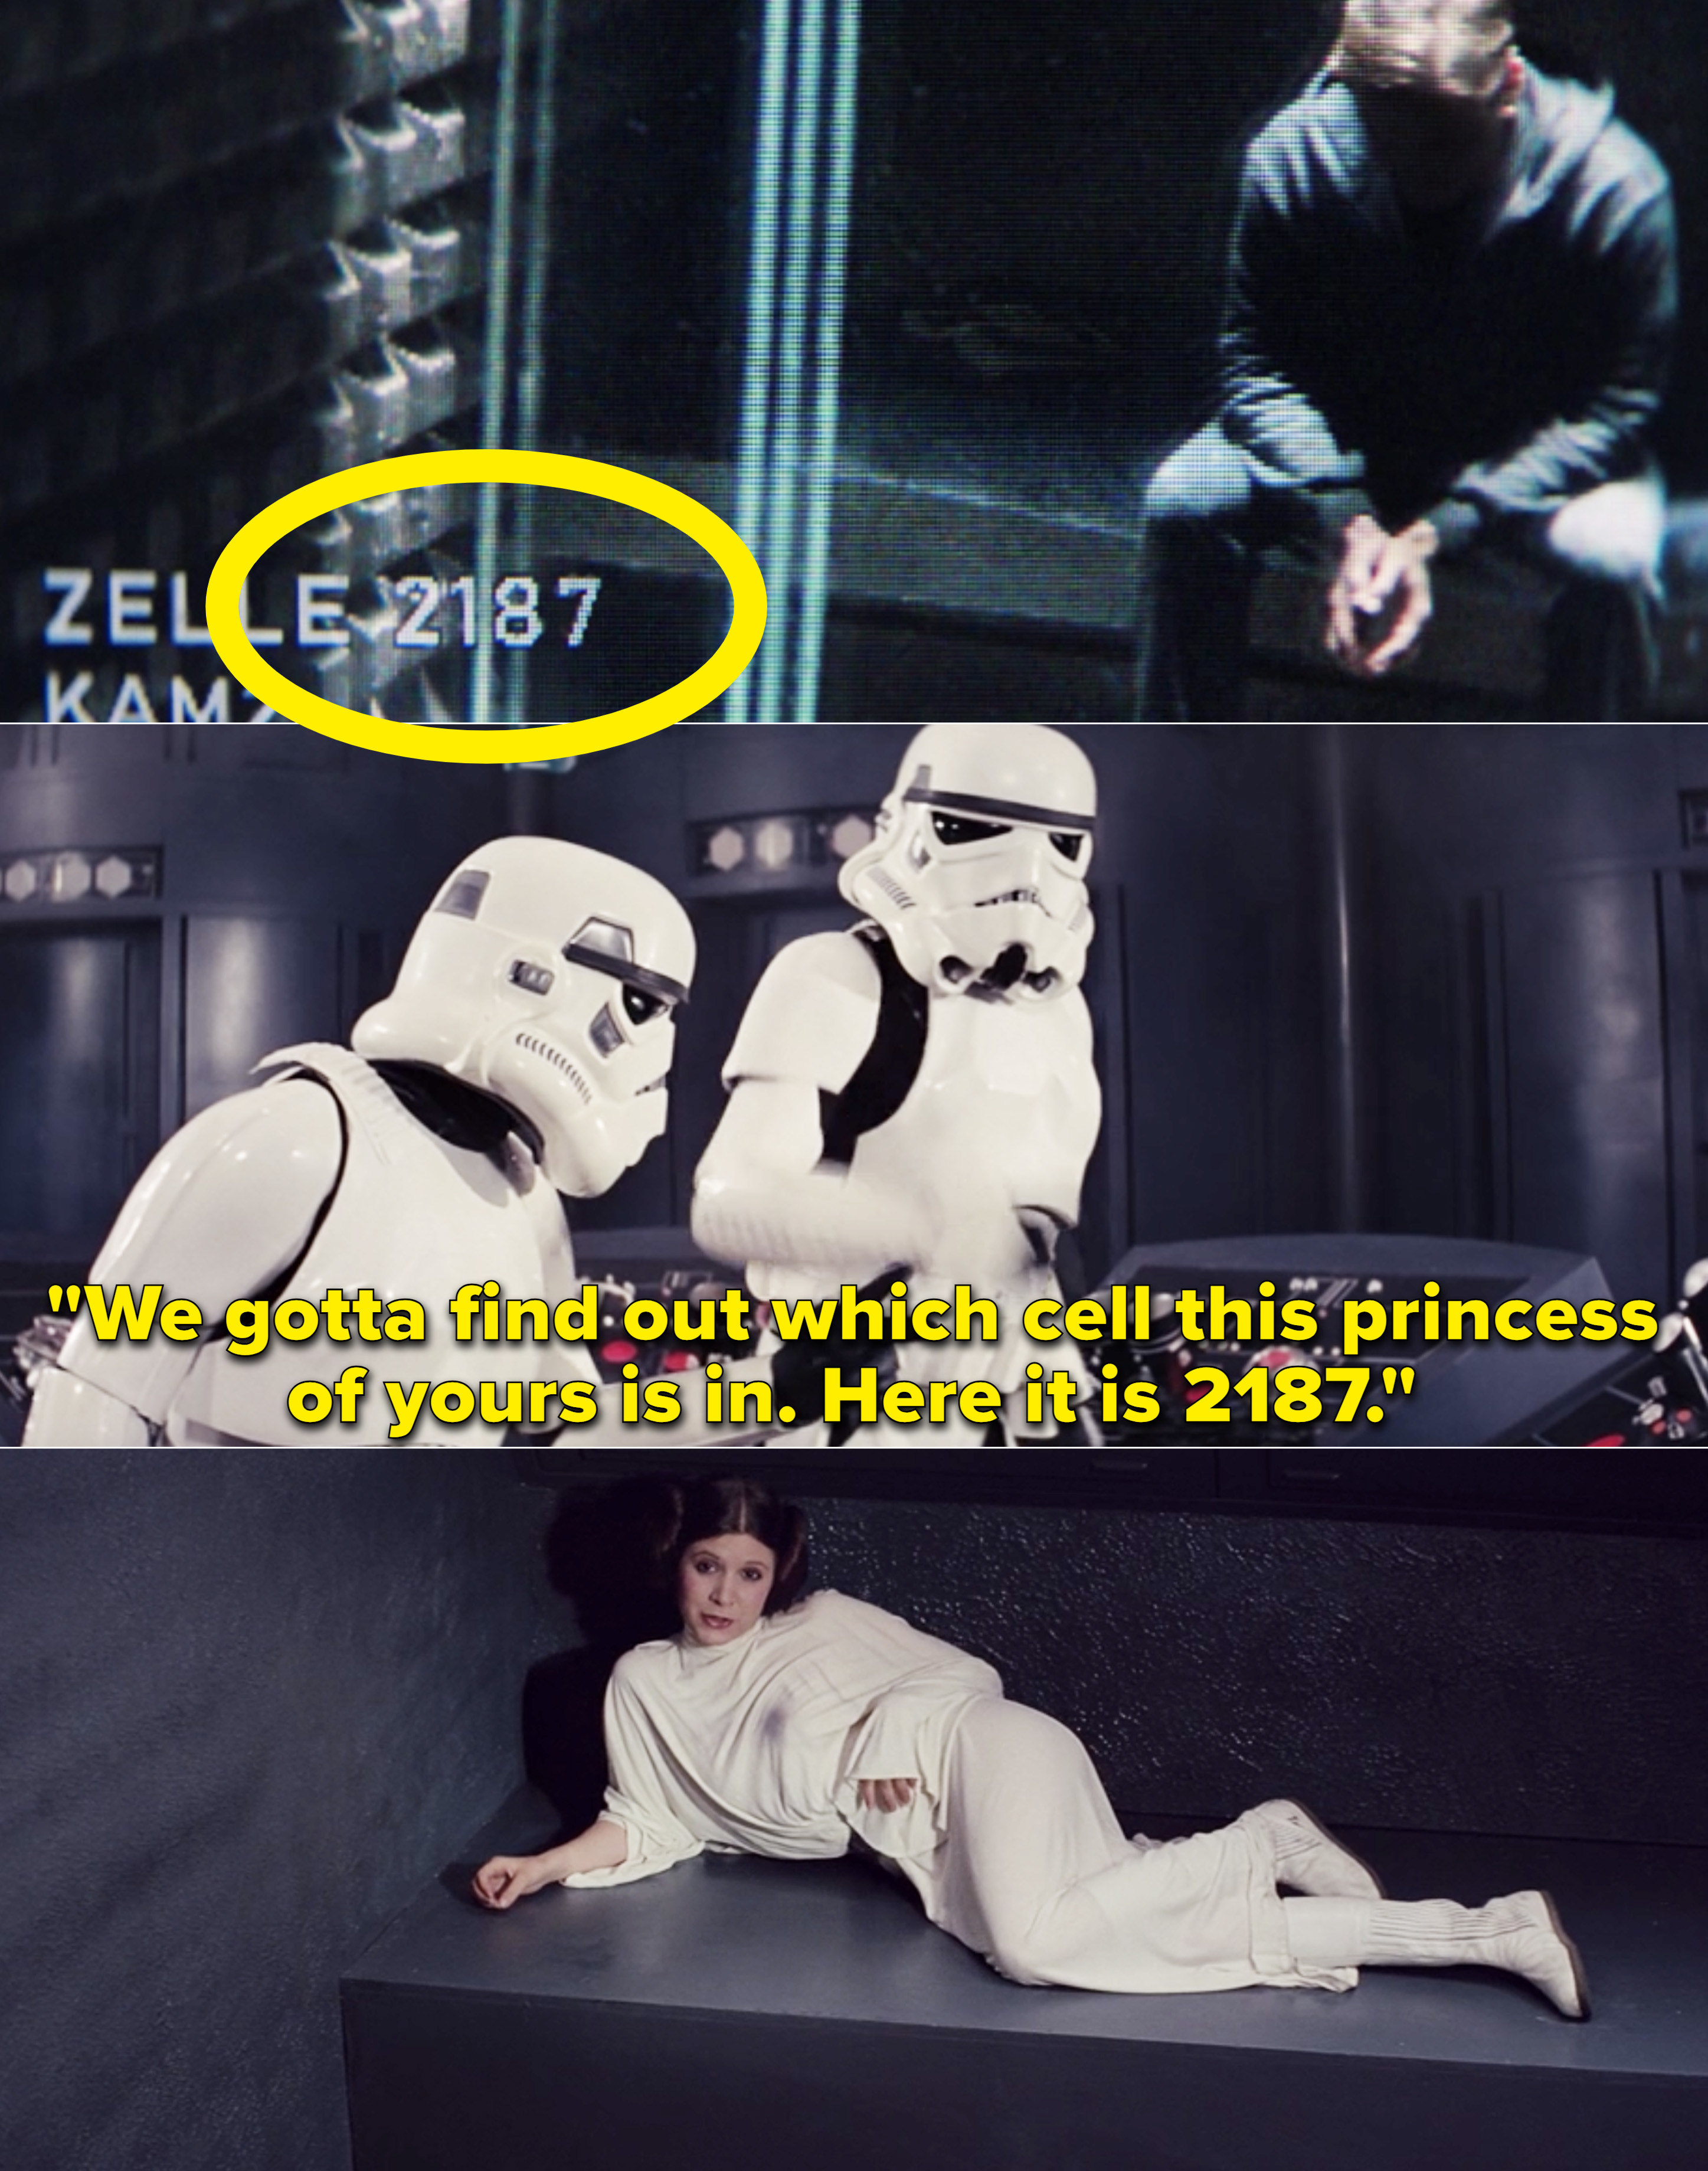 """Han as a stormtrooper saying, """"We gotta find out which cell this princess of yours is in. Here it is 2187"""""""